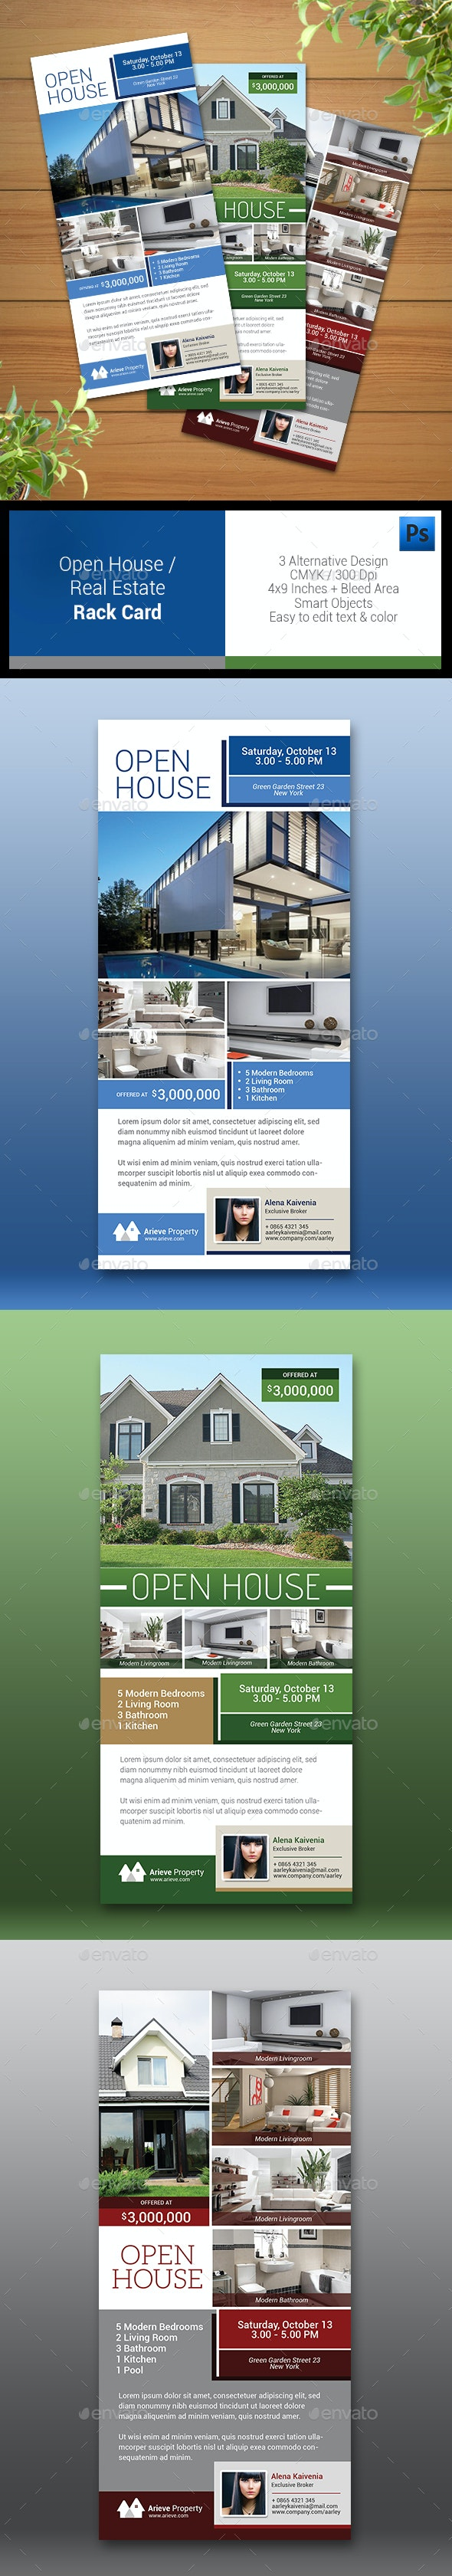 Open House / Real Estate Rack Card - Corporate Flyers